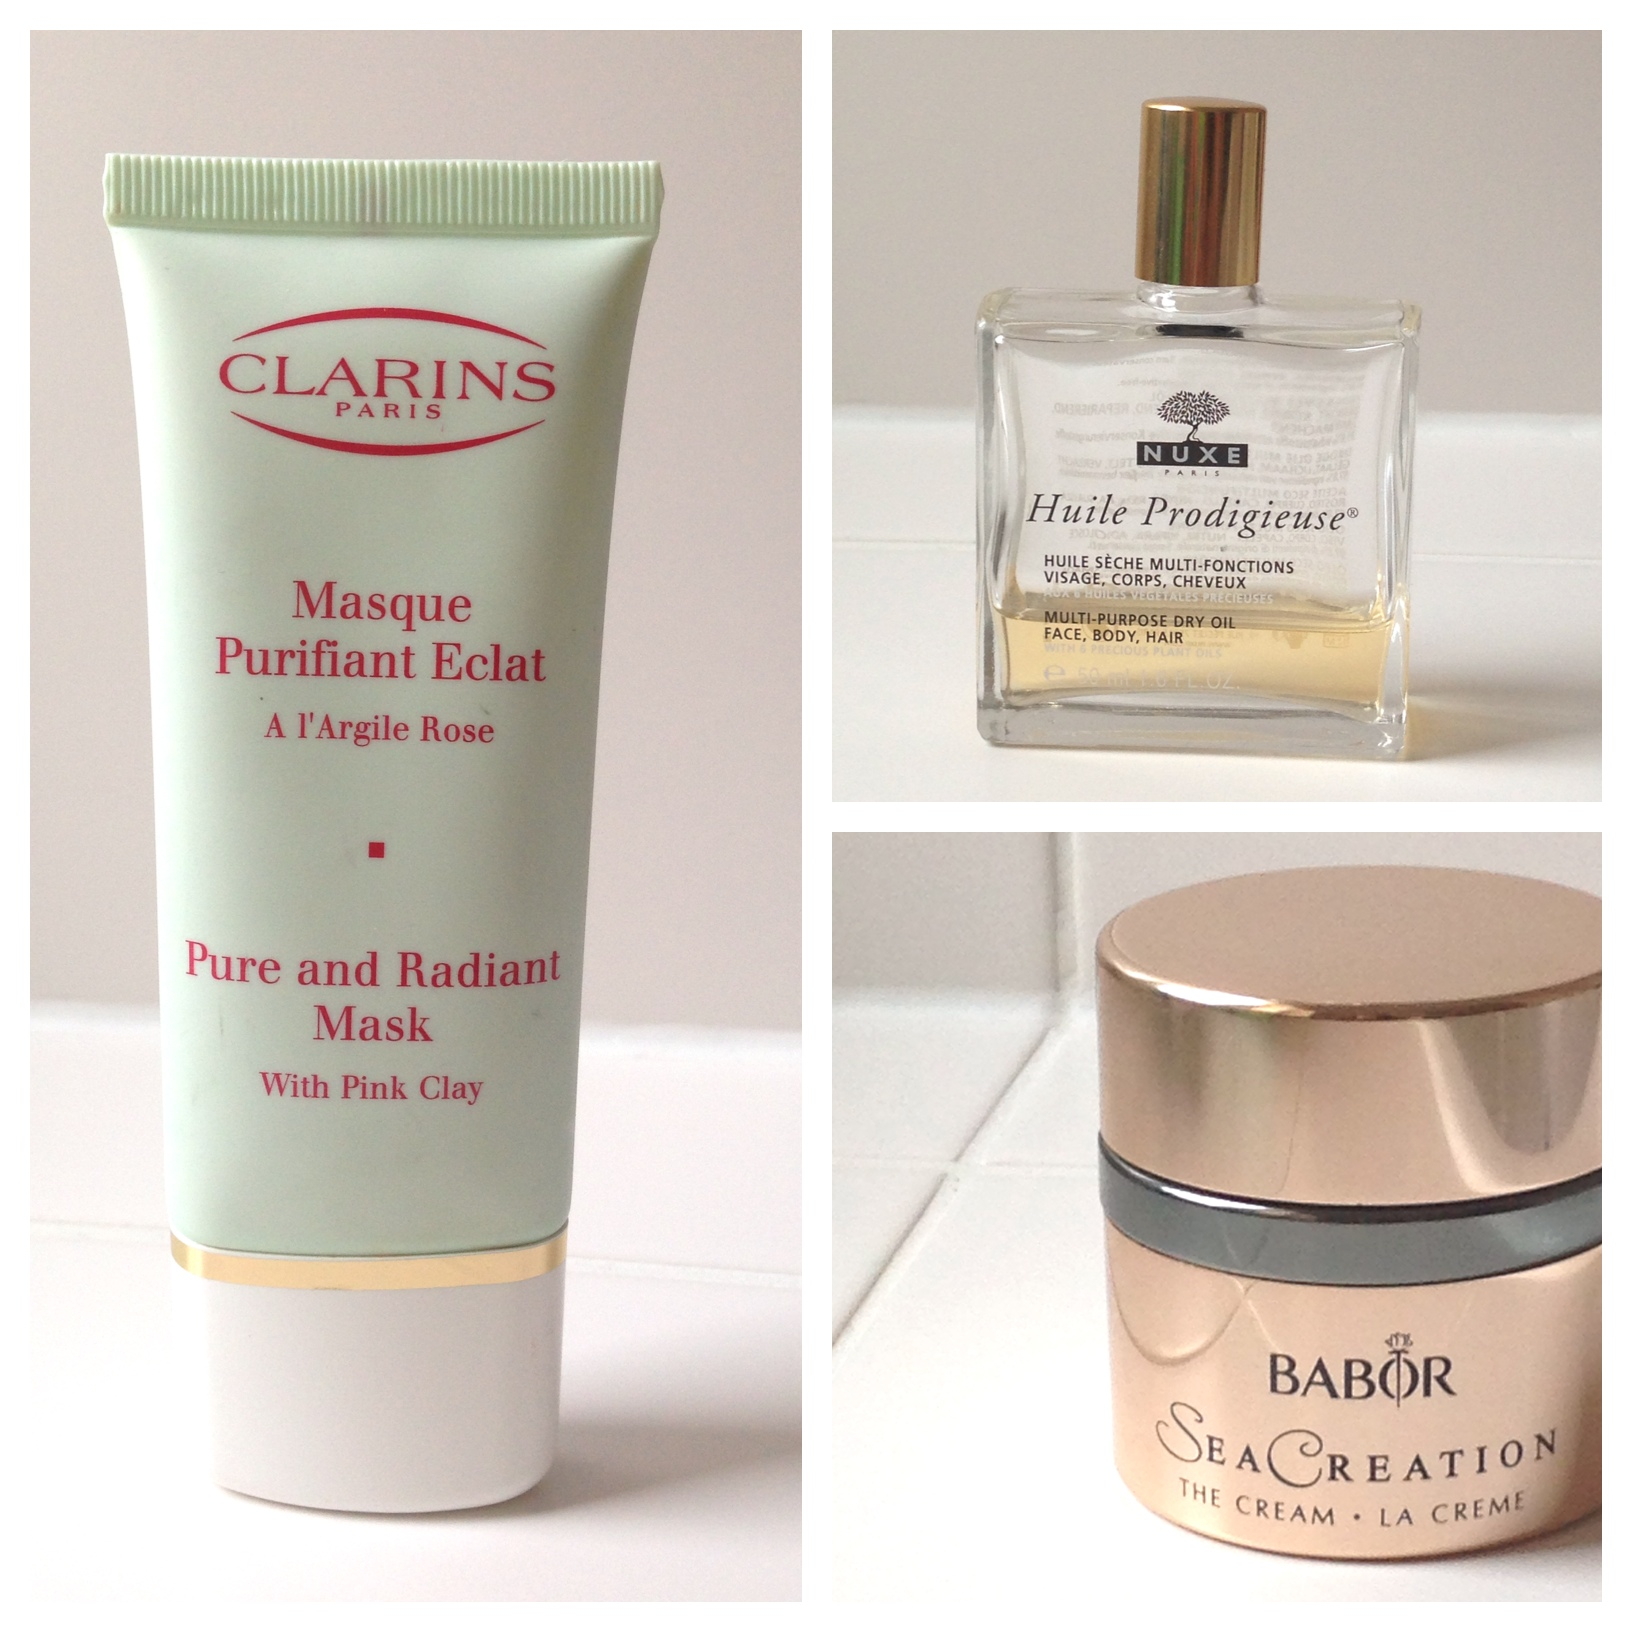 Clarins Gesichtsmaske Babor Sea Creation Nuxe Öl